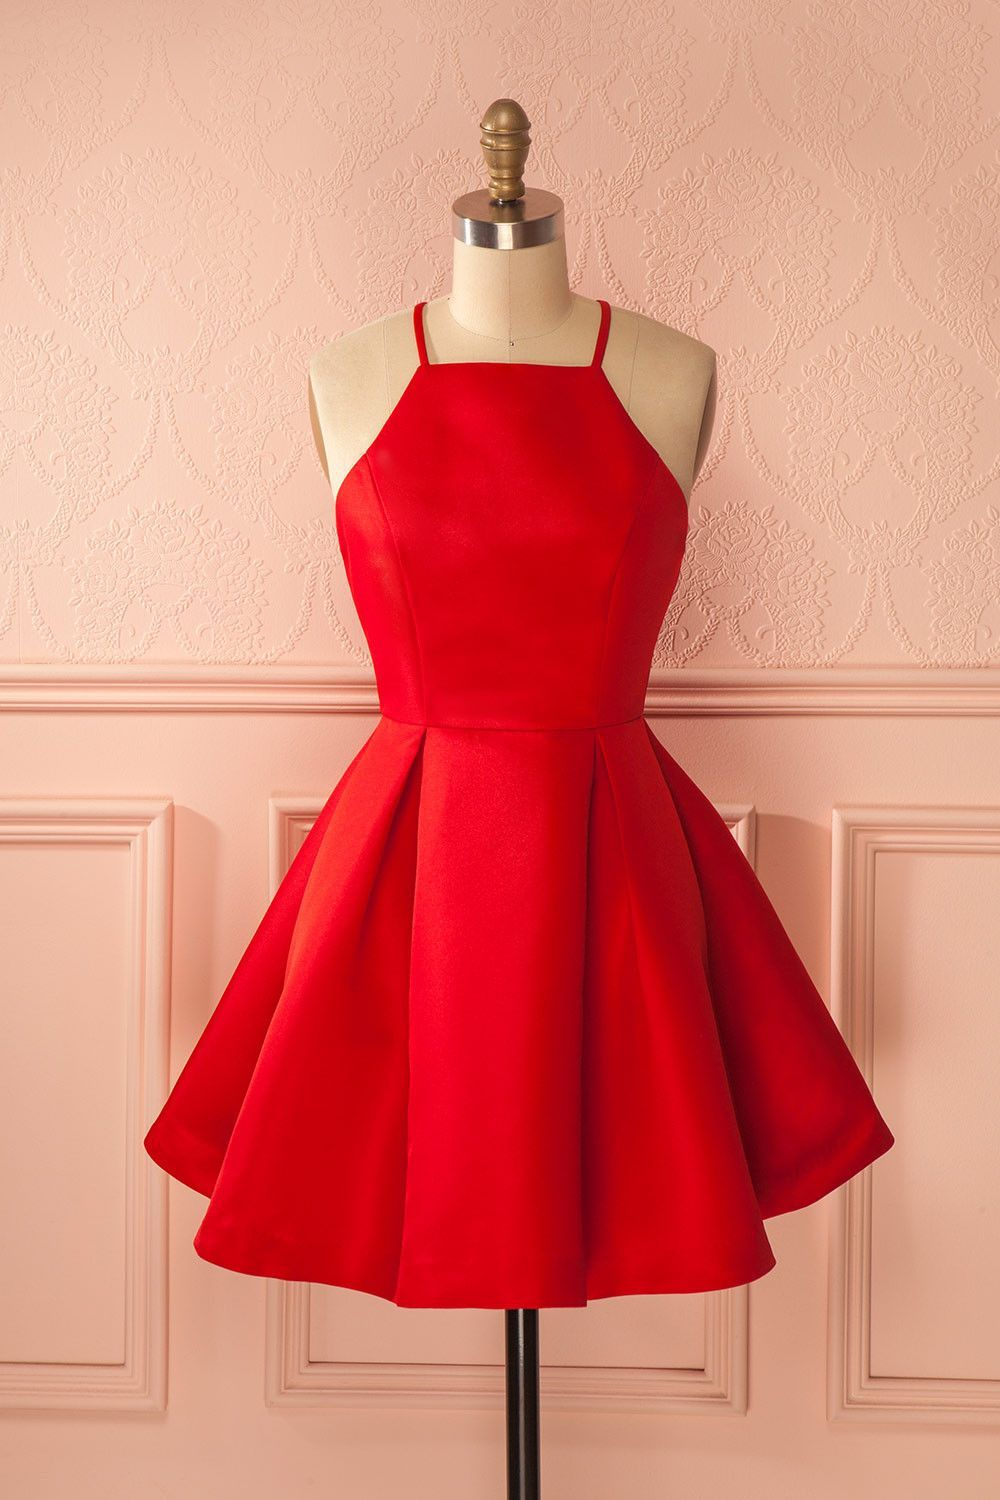 07182611c15 Cute Short Red Prom Dresses